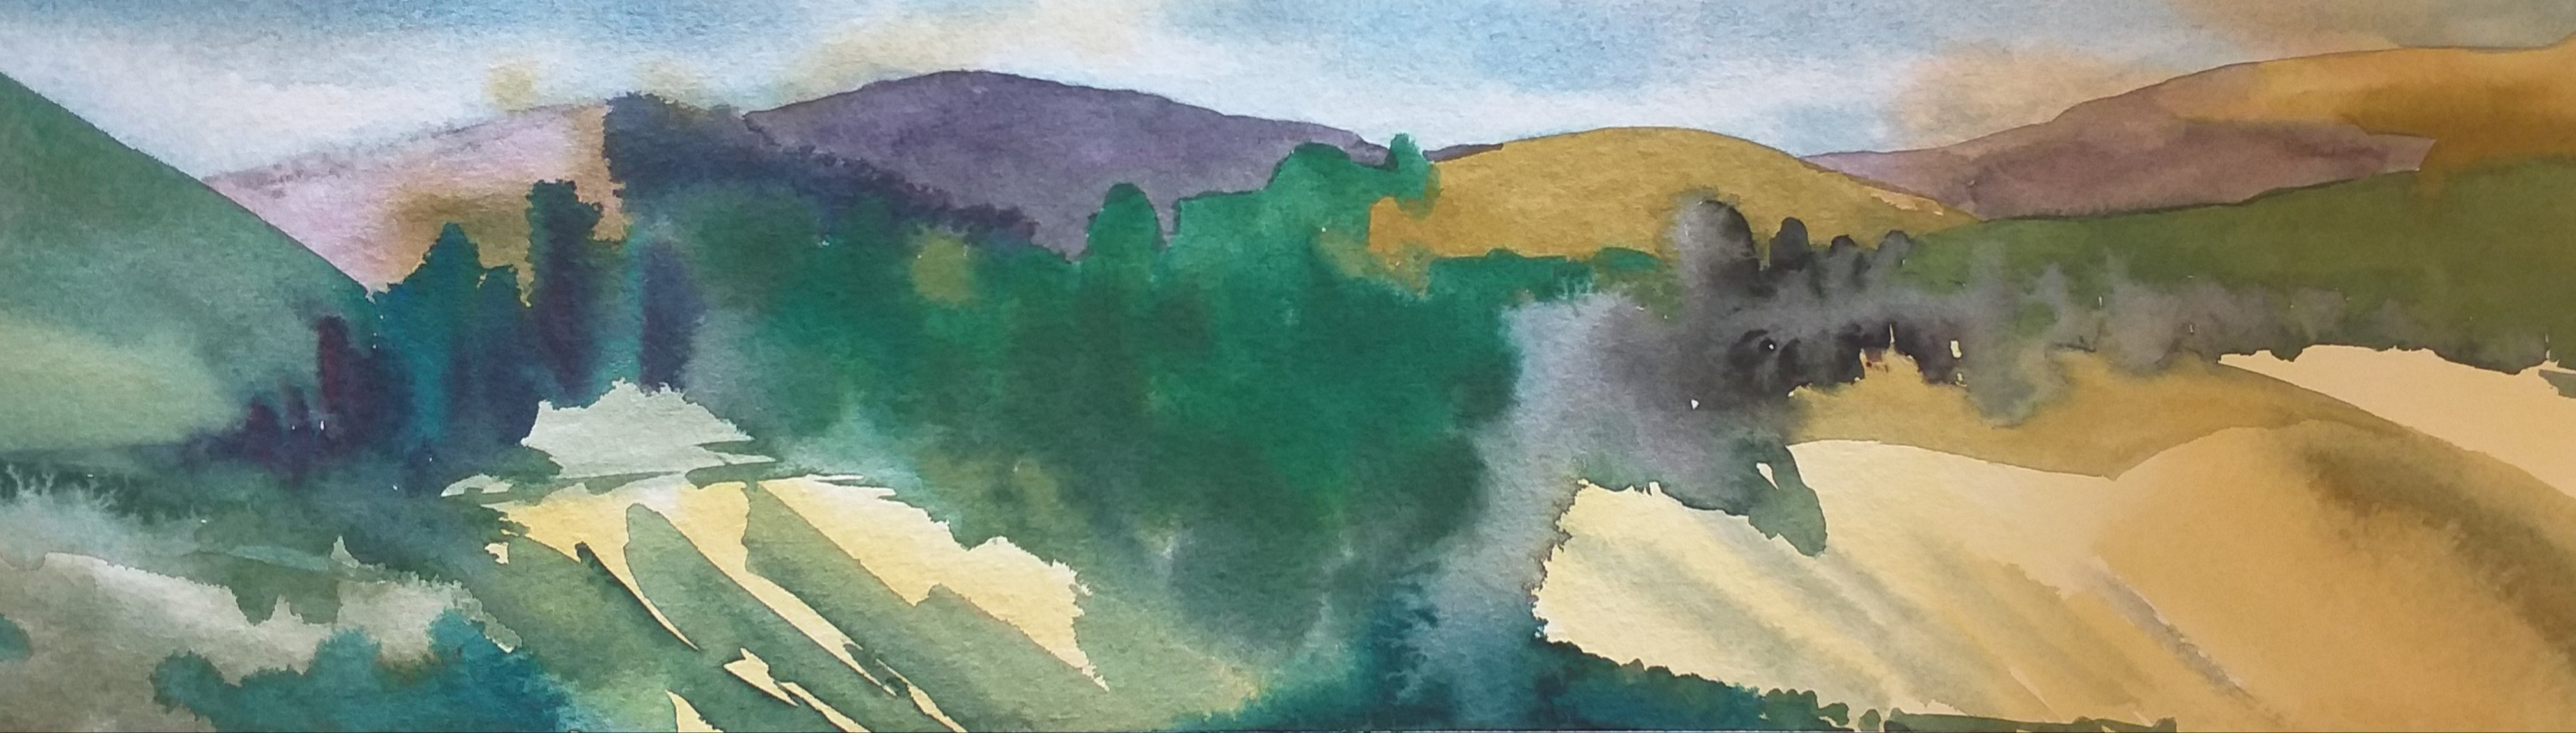 Watercolour painted plein air in Tuscany